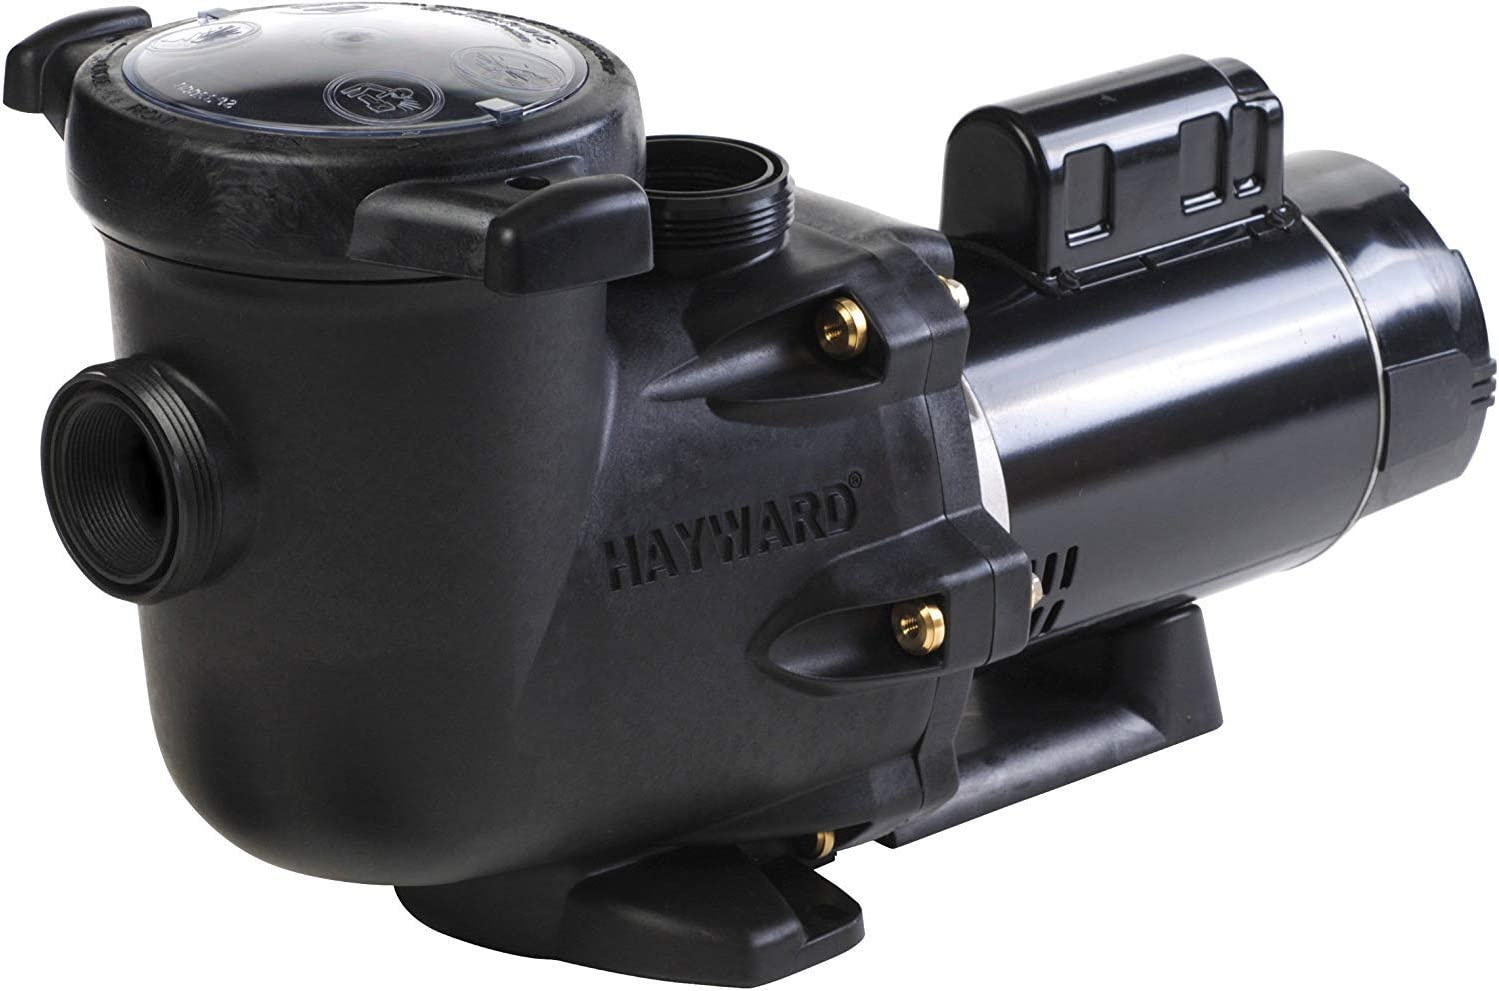 Hayward W3SP3210X15 TriStar Pool Pump, 1.5 HP Max Rate